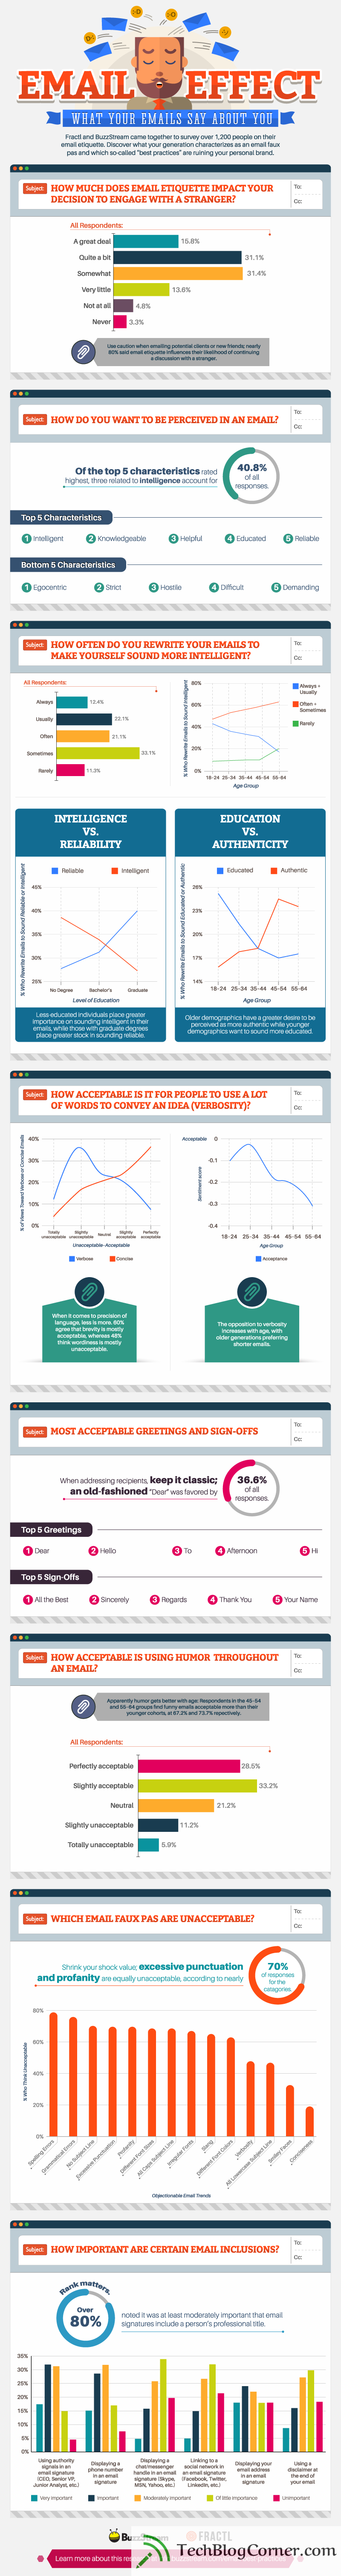 email_marketing-best-practice-stats-techblogcorner